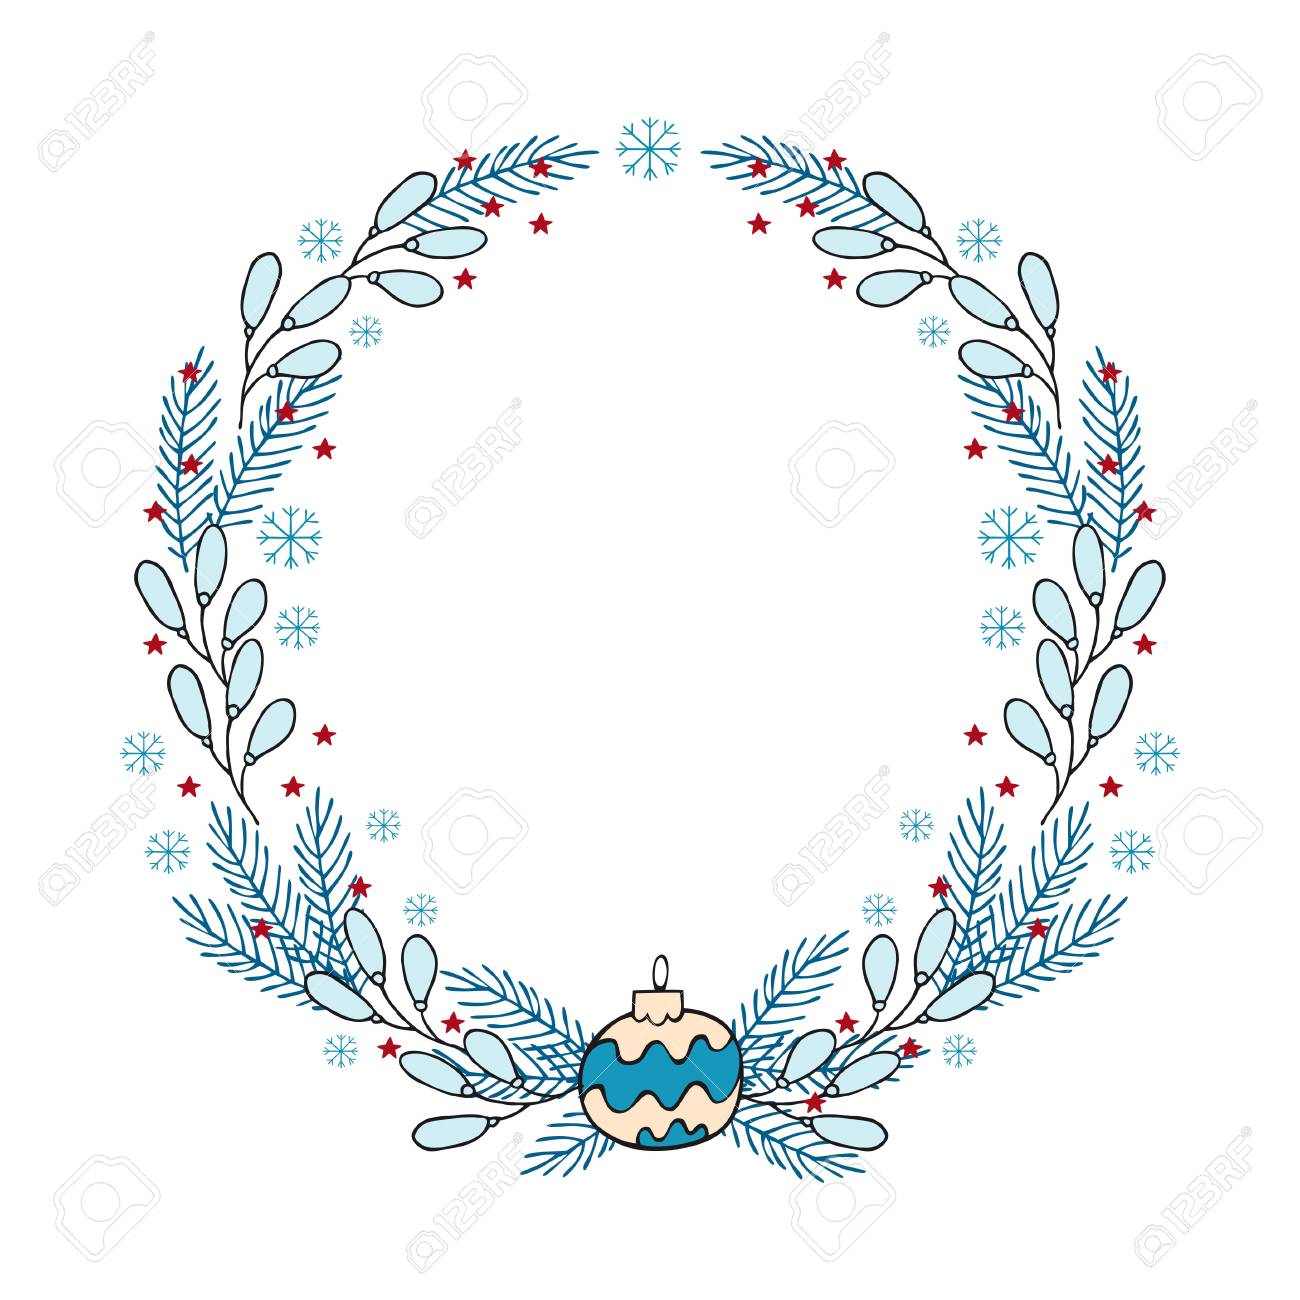 hand drawn winter holiday wreath a template of greeting card